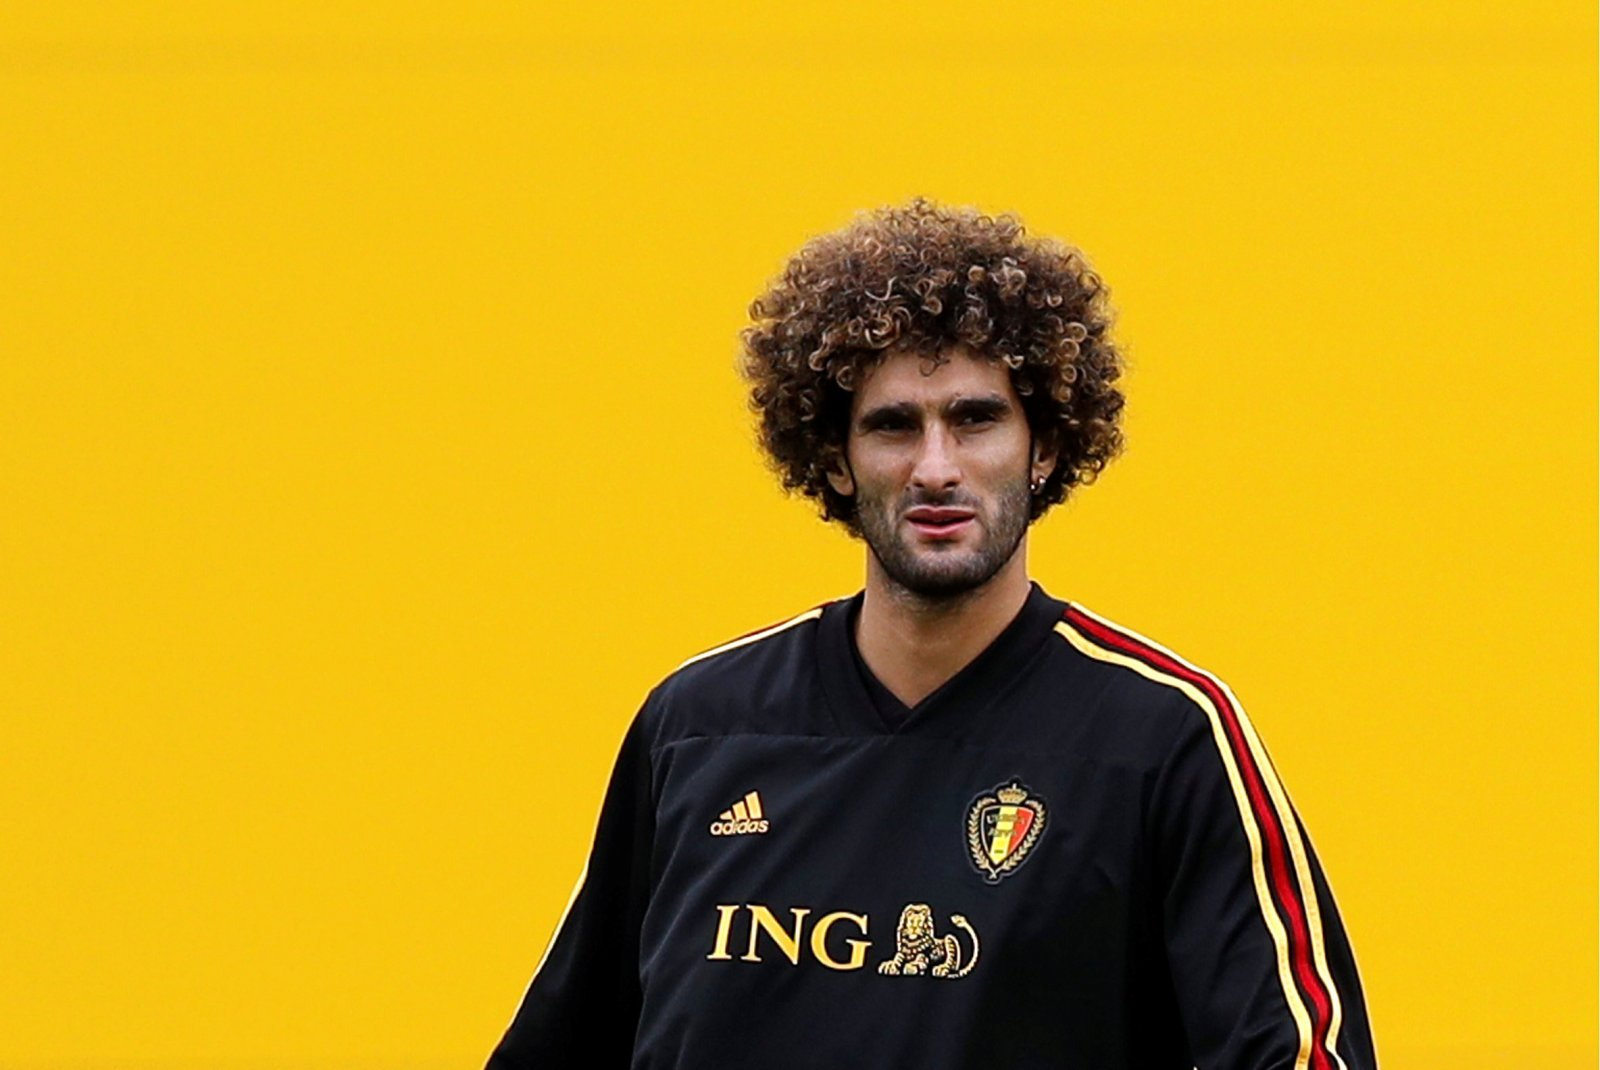 Re-signing Marouane Fellaini would be a superb move for Everton